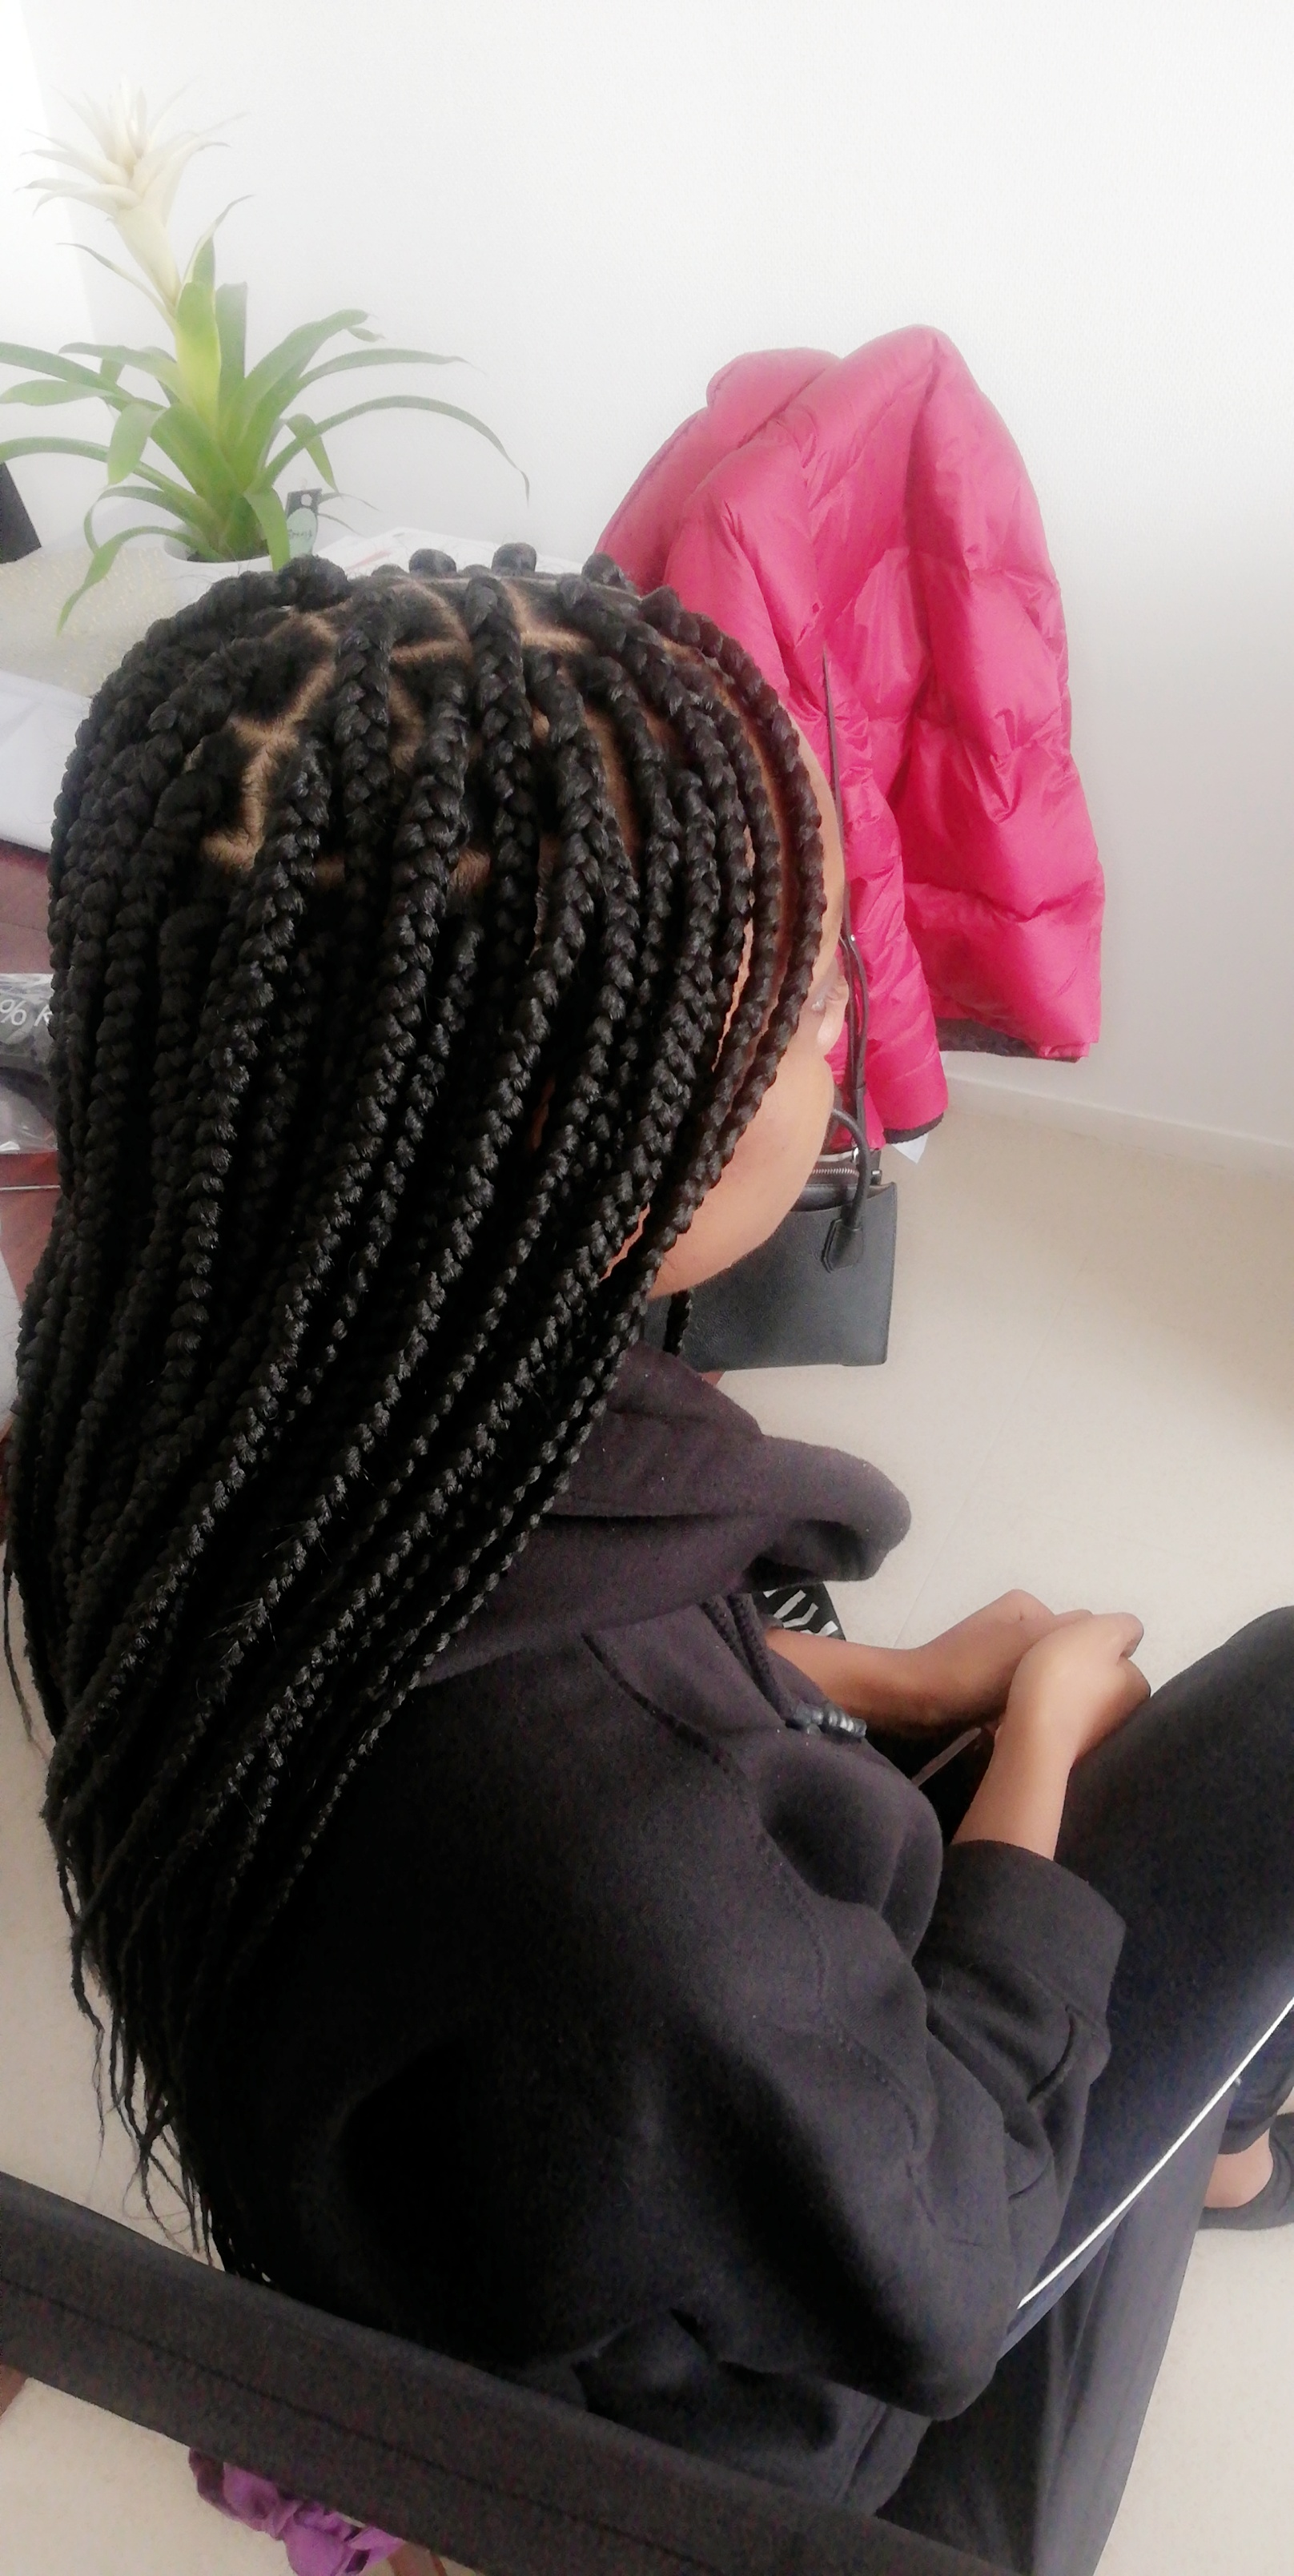 salon de coiffure afro tresse tresses box braids crochet braids vanilles tissages paris 75 77 78 91 92 93 94 95 WCZHVIKE